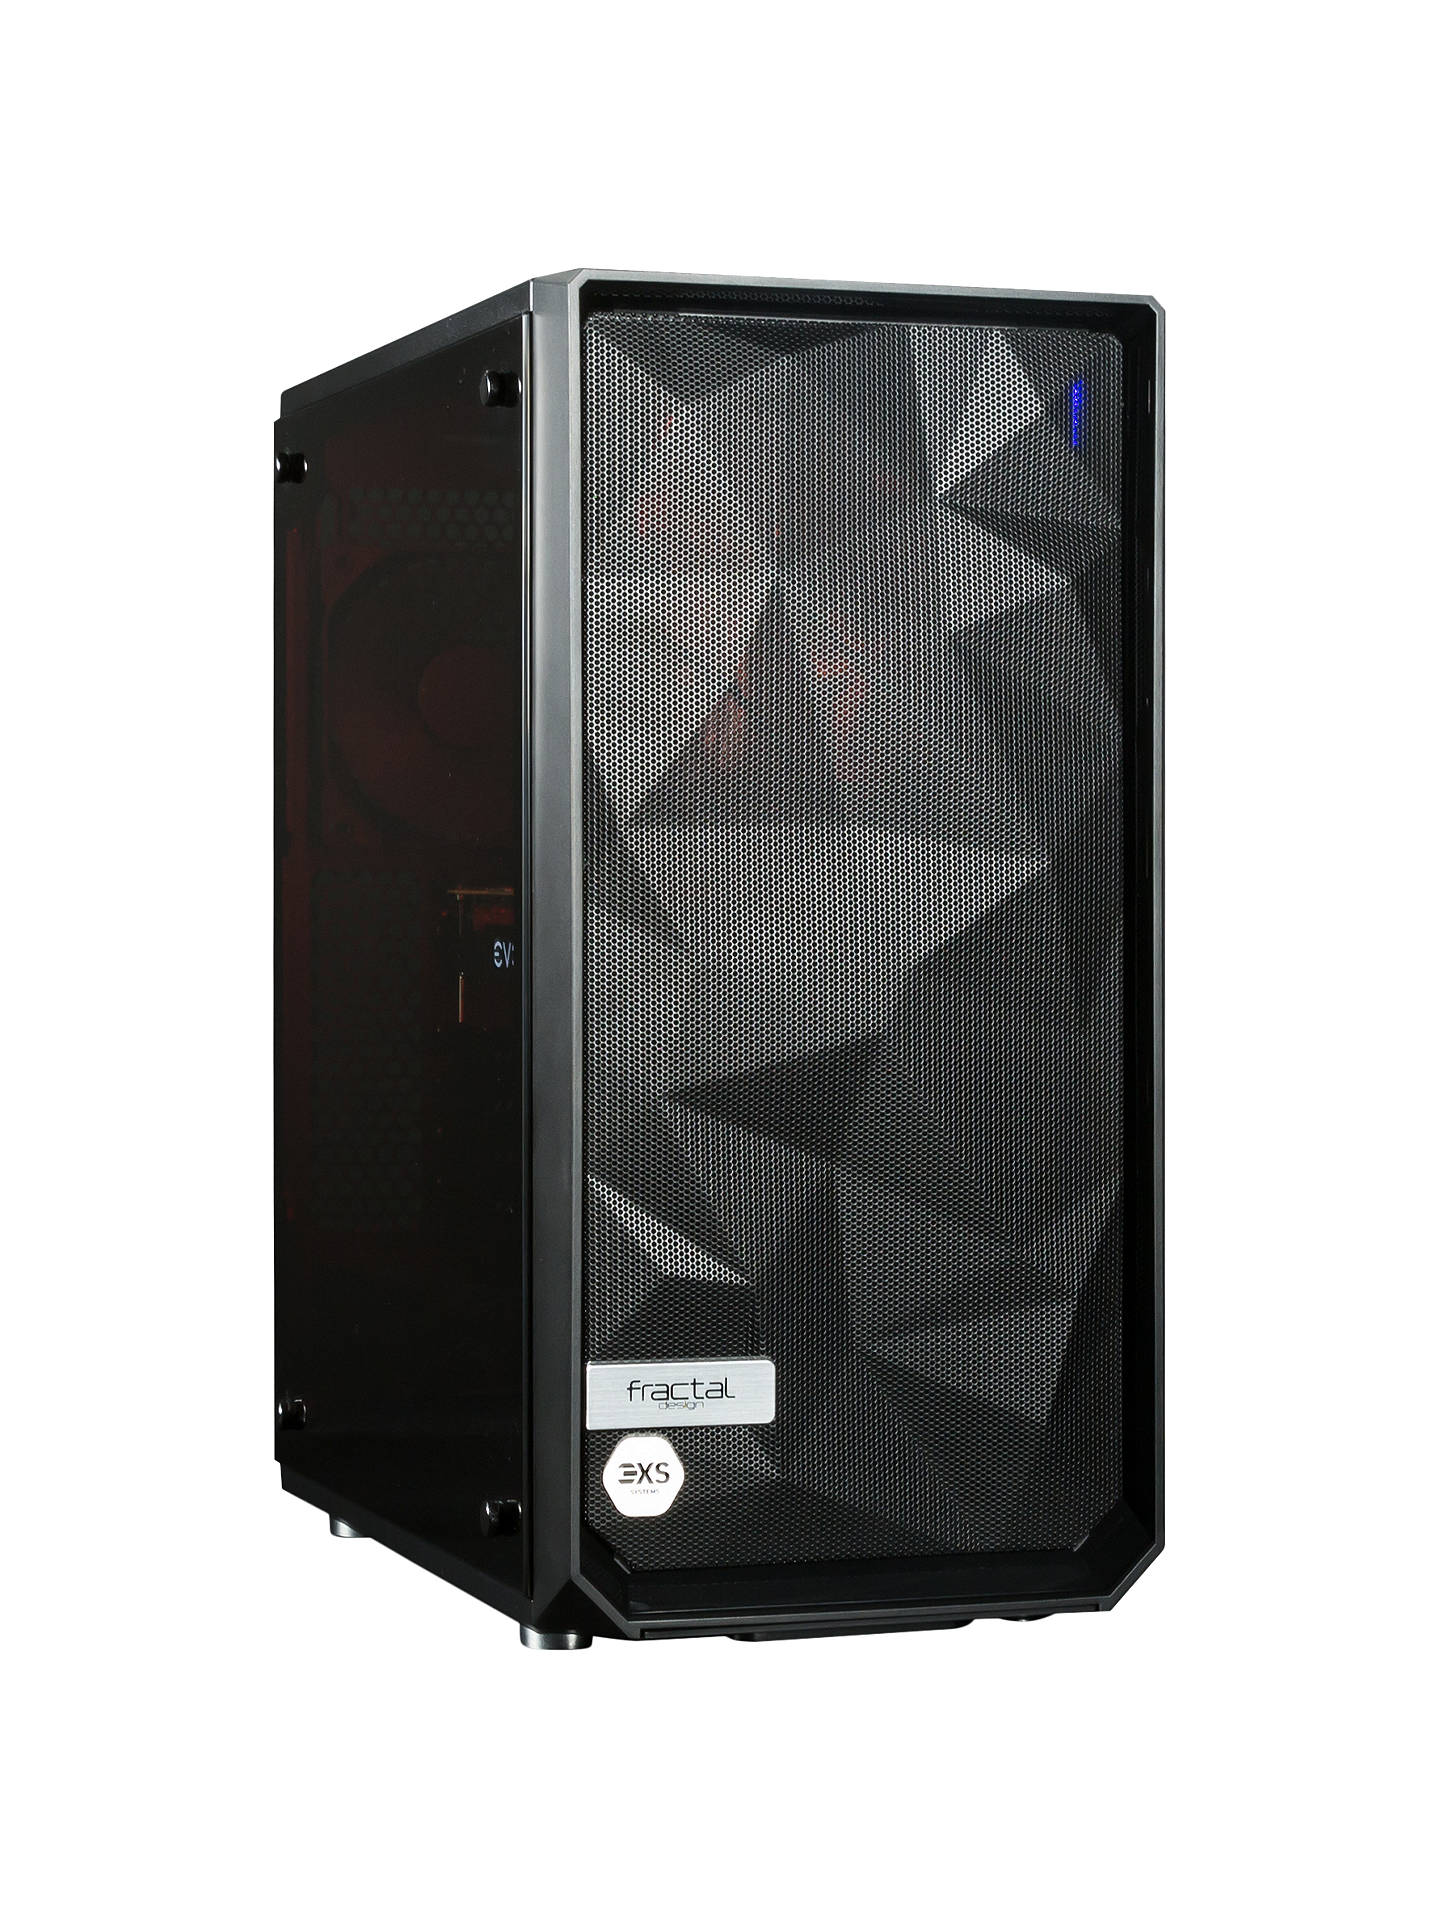 BuyScan 3XS LN85696 Gaming PC, Intel Core i5, 16GB RAM, 2TB HDD + 250GB SSD, GeForce GTX 1070 Ti, Black Online at johnlewis.com